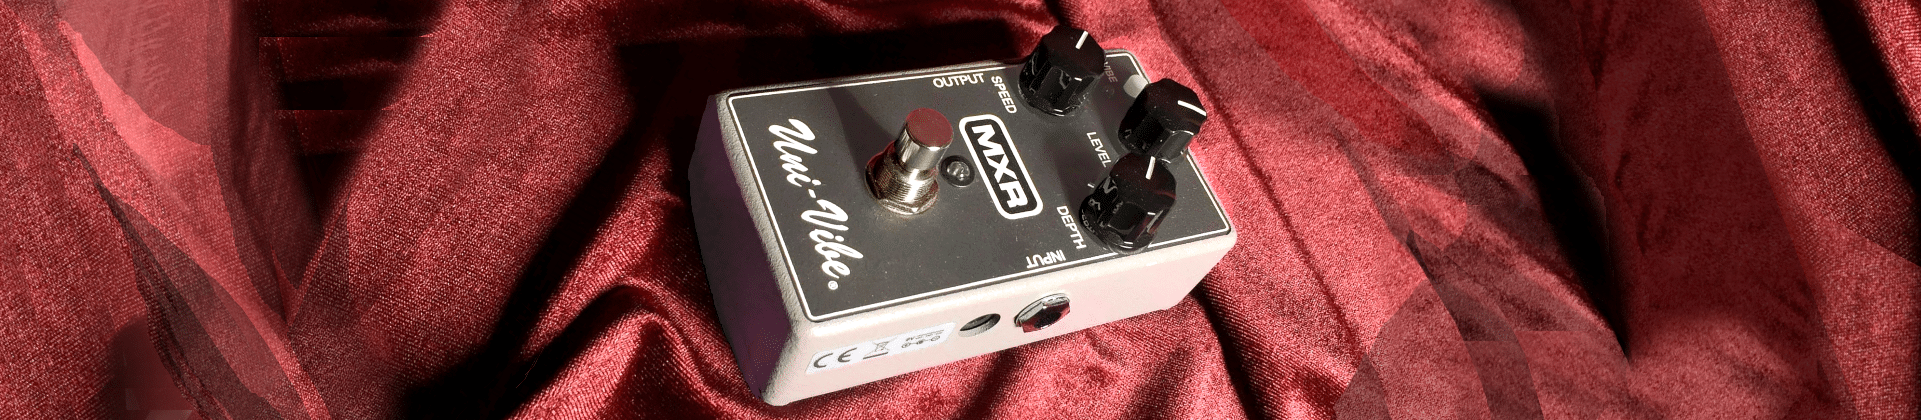 Best Vibrato Pedals - Reviewed in Detail [Feb. 2020]